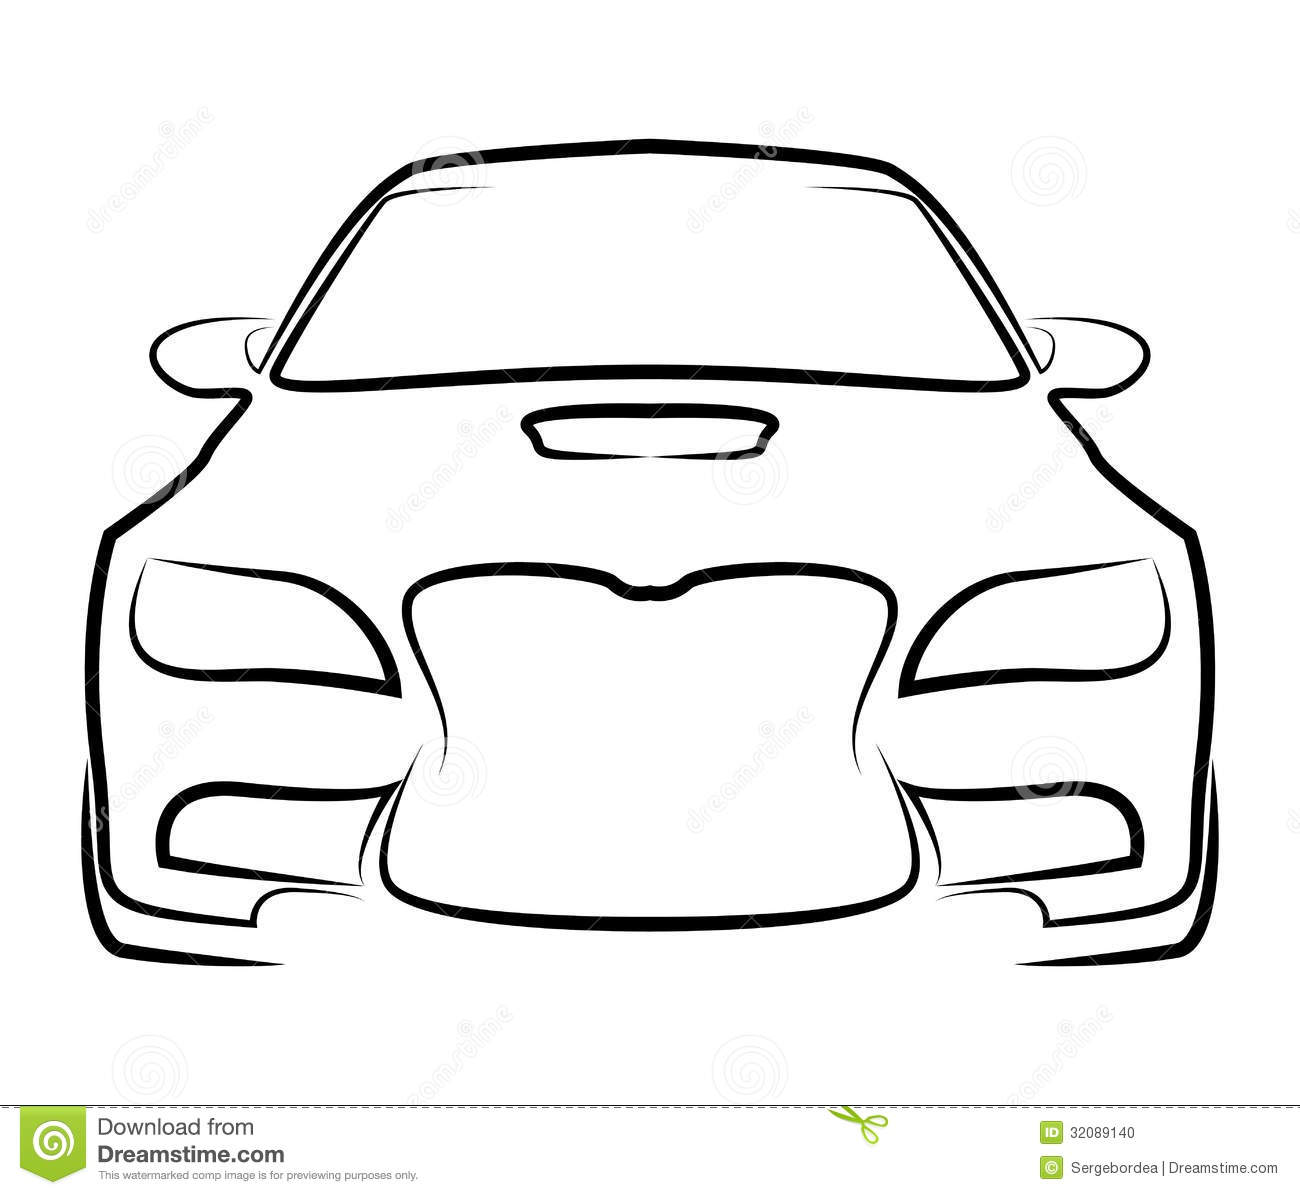 Car Silhouette Vector Free Download